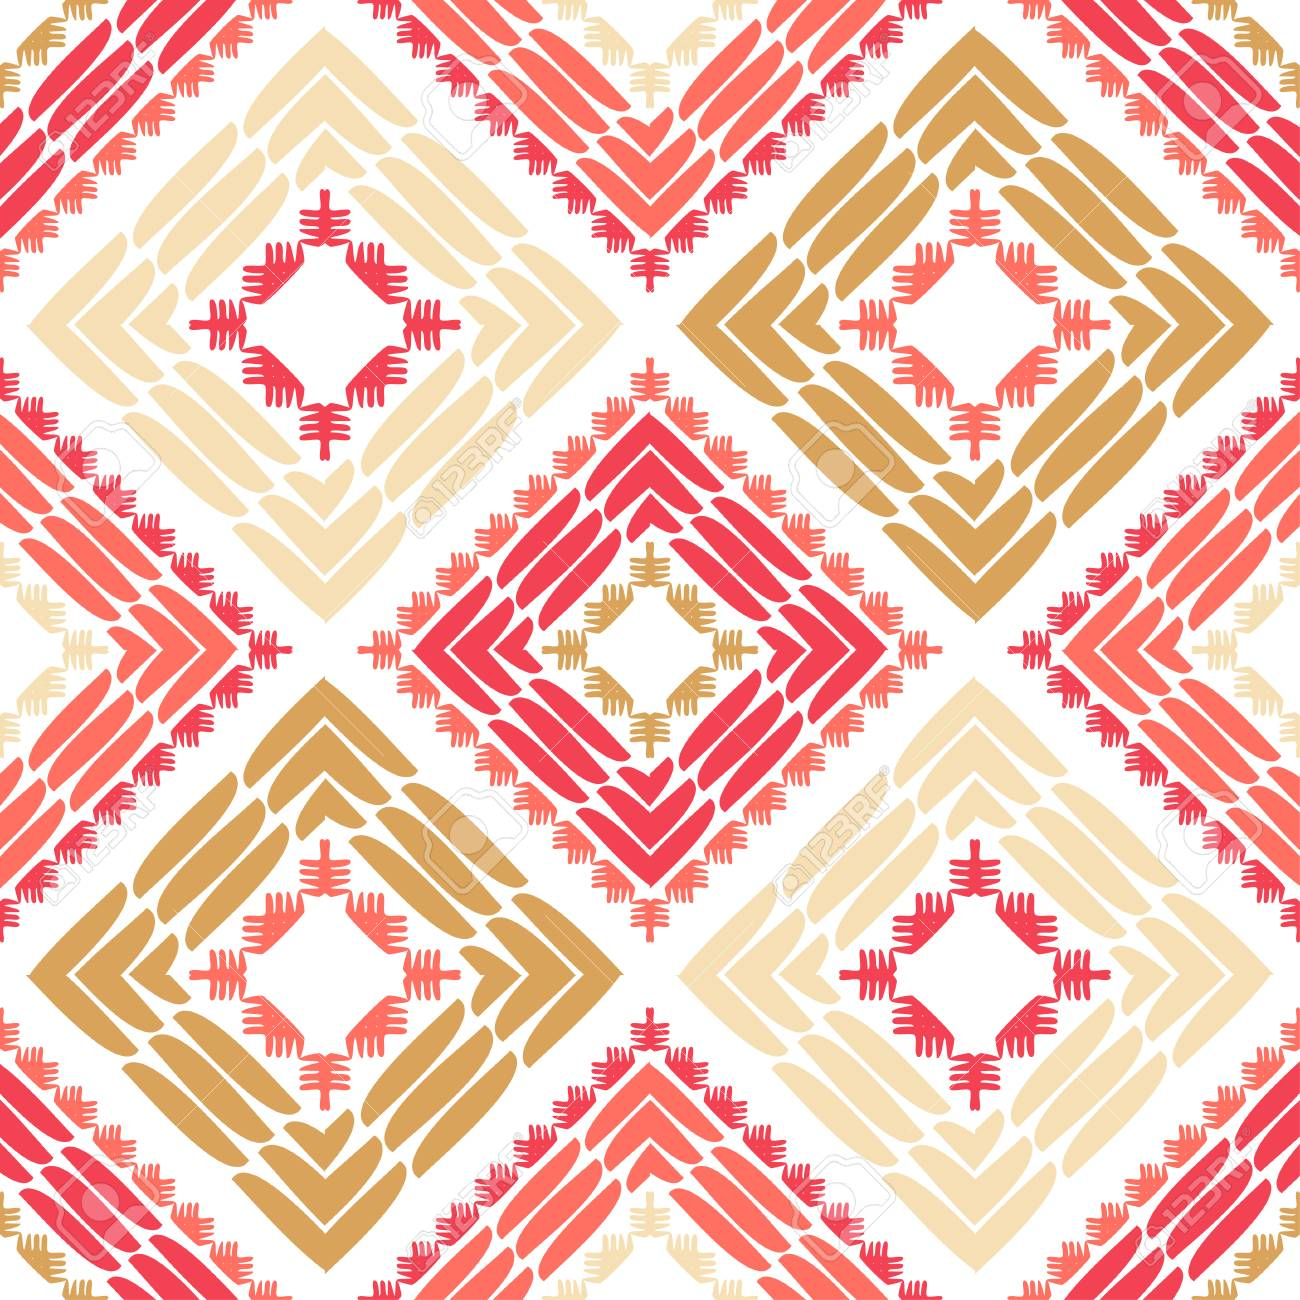 Ethnic boho seamless pattern. Lace. Embroidery on fabric. Patchwork texture. Weaving. Traditional ornament. Tribal pattern. Folk motif. Can be used for wallpaper, textile, wrapping, web. - 139543397